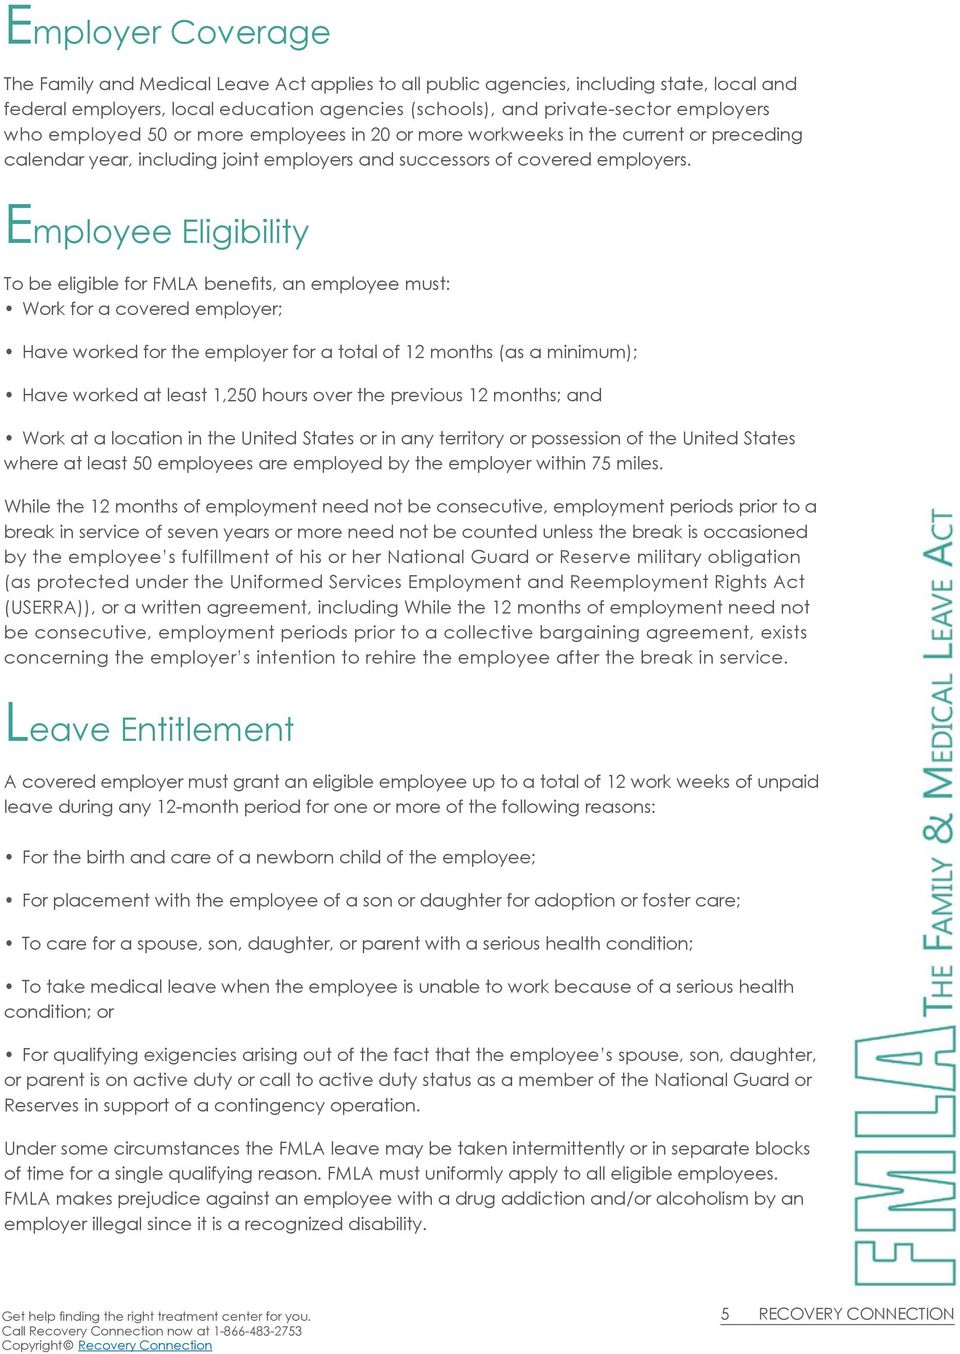 Employee Eligibility To be eligible for FMLA benefits, an employee must: Work for a covered employer; Have worked for the employer for a total of 12 months (as a minimum); Have worked at least 1,250